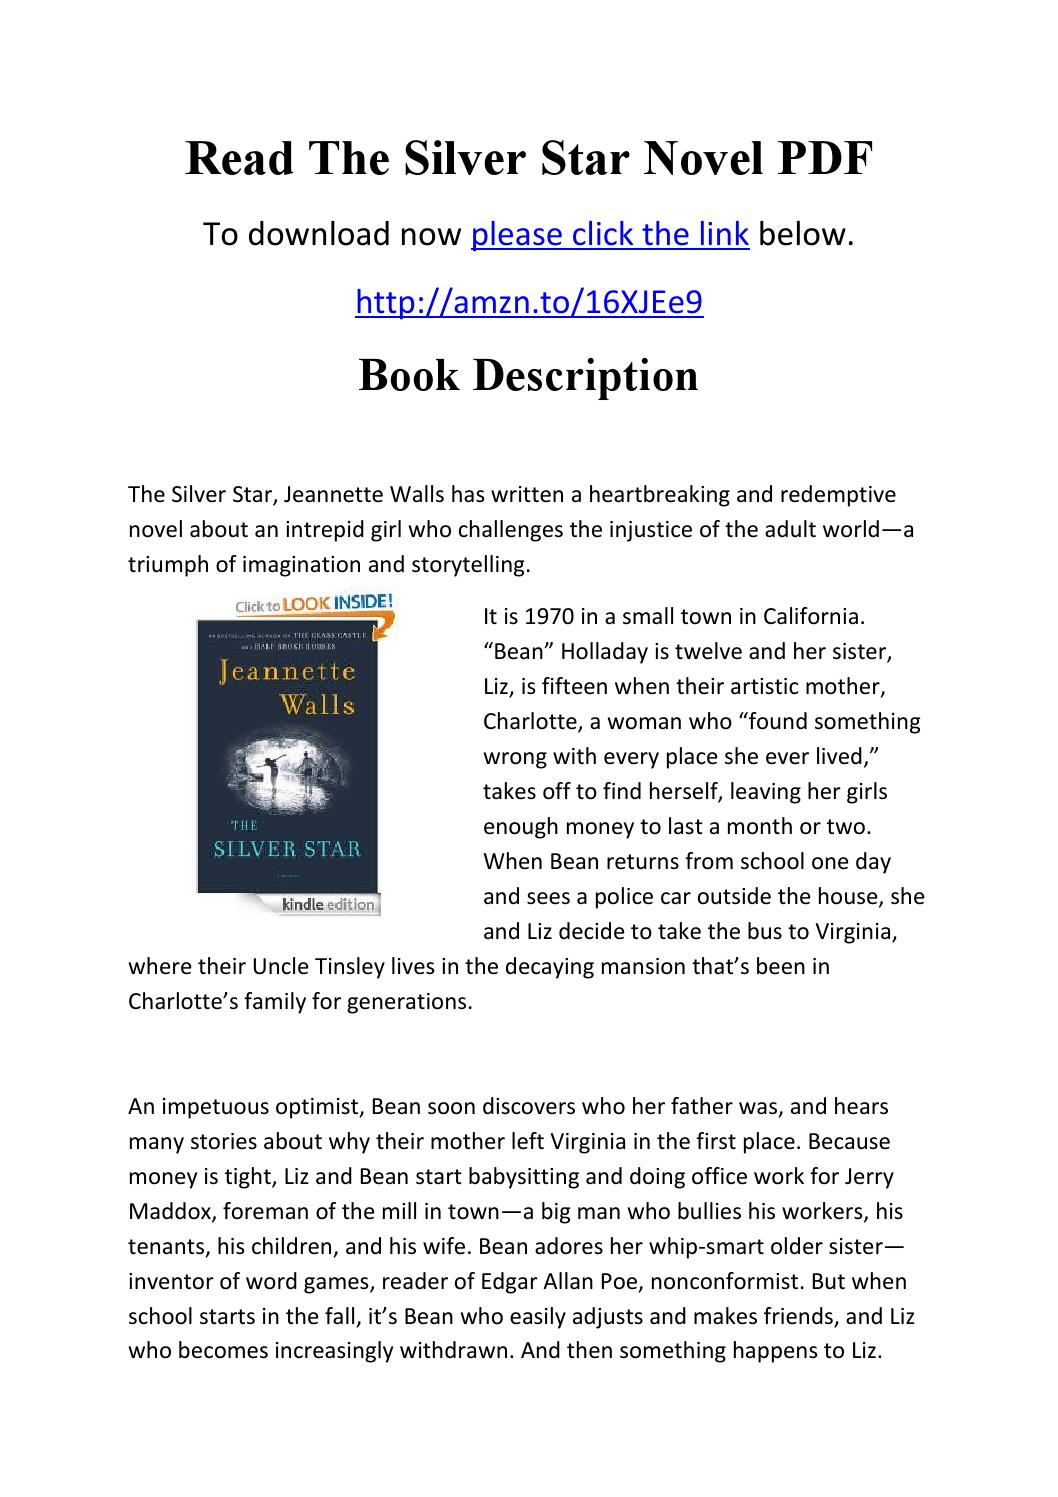 The Silver Star PDF Details